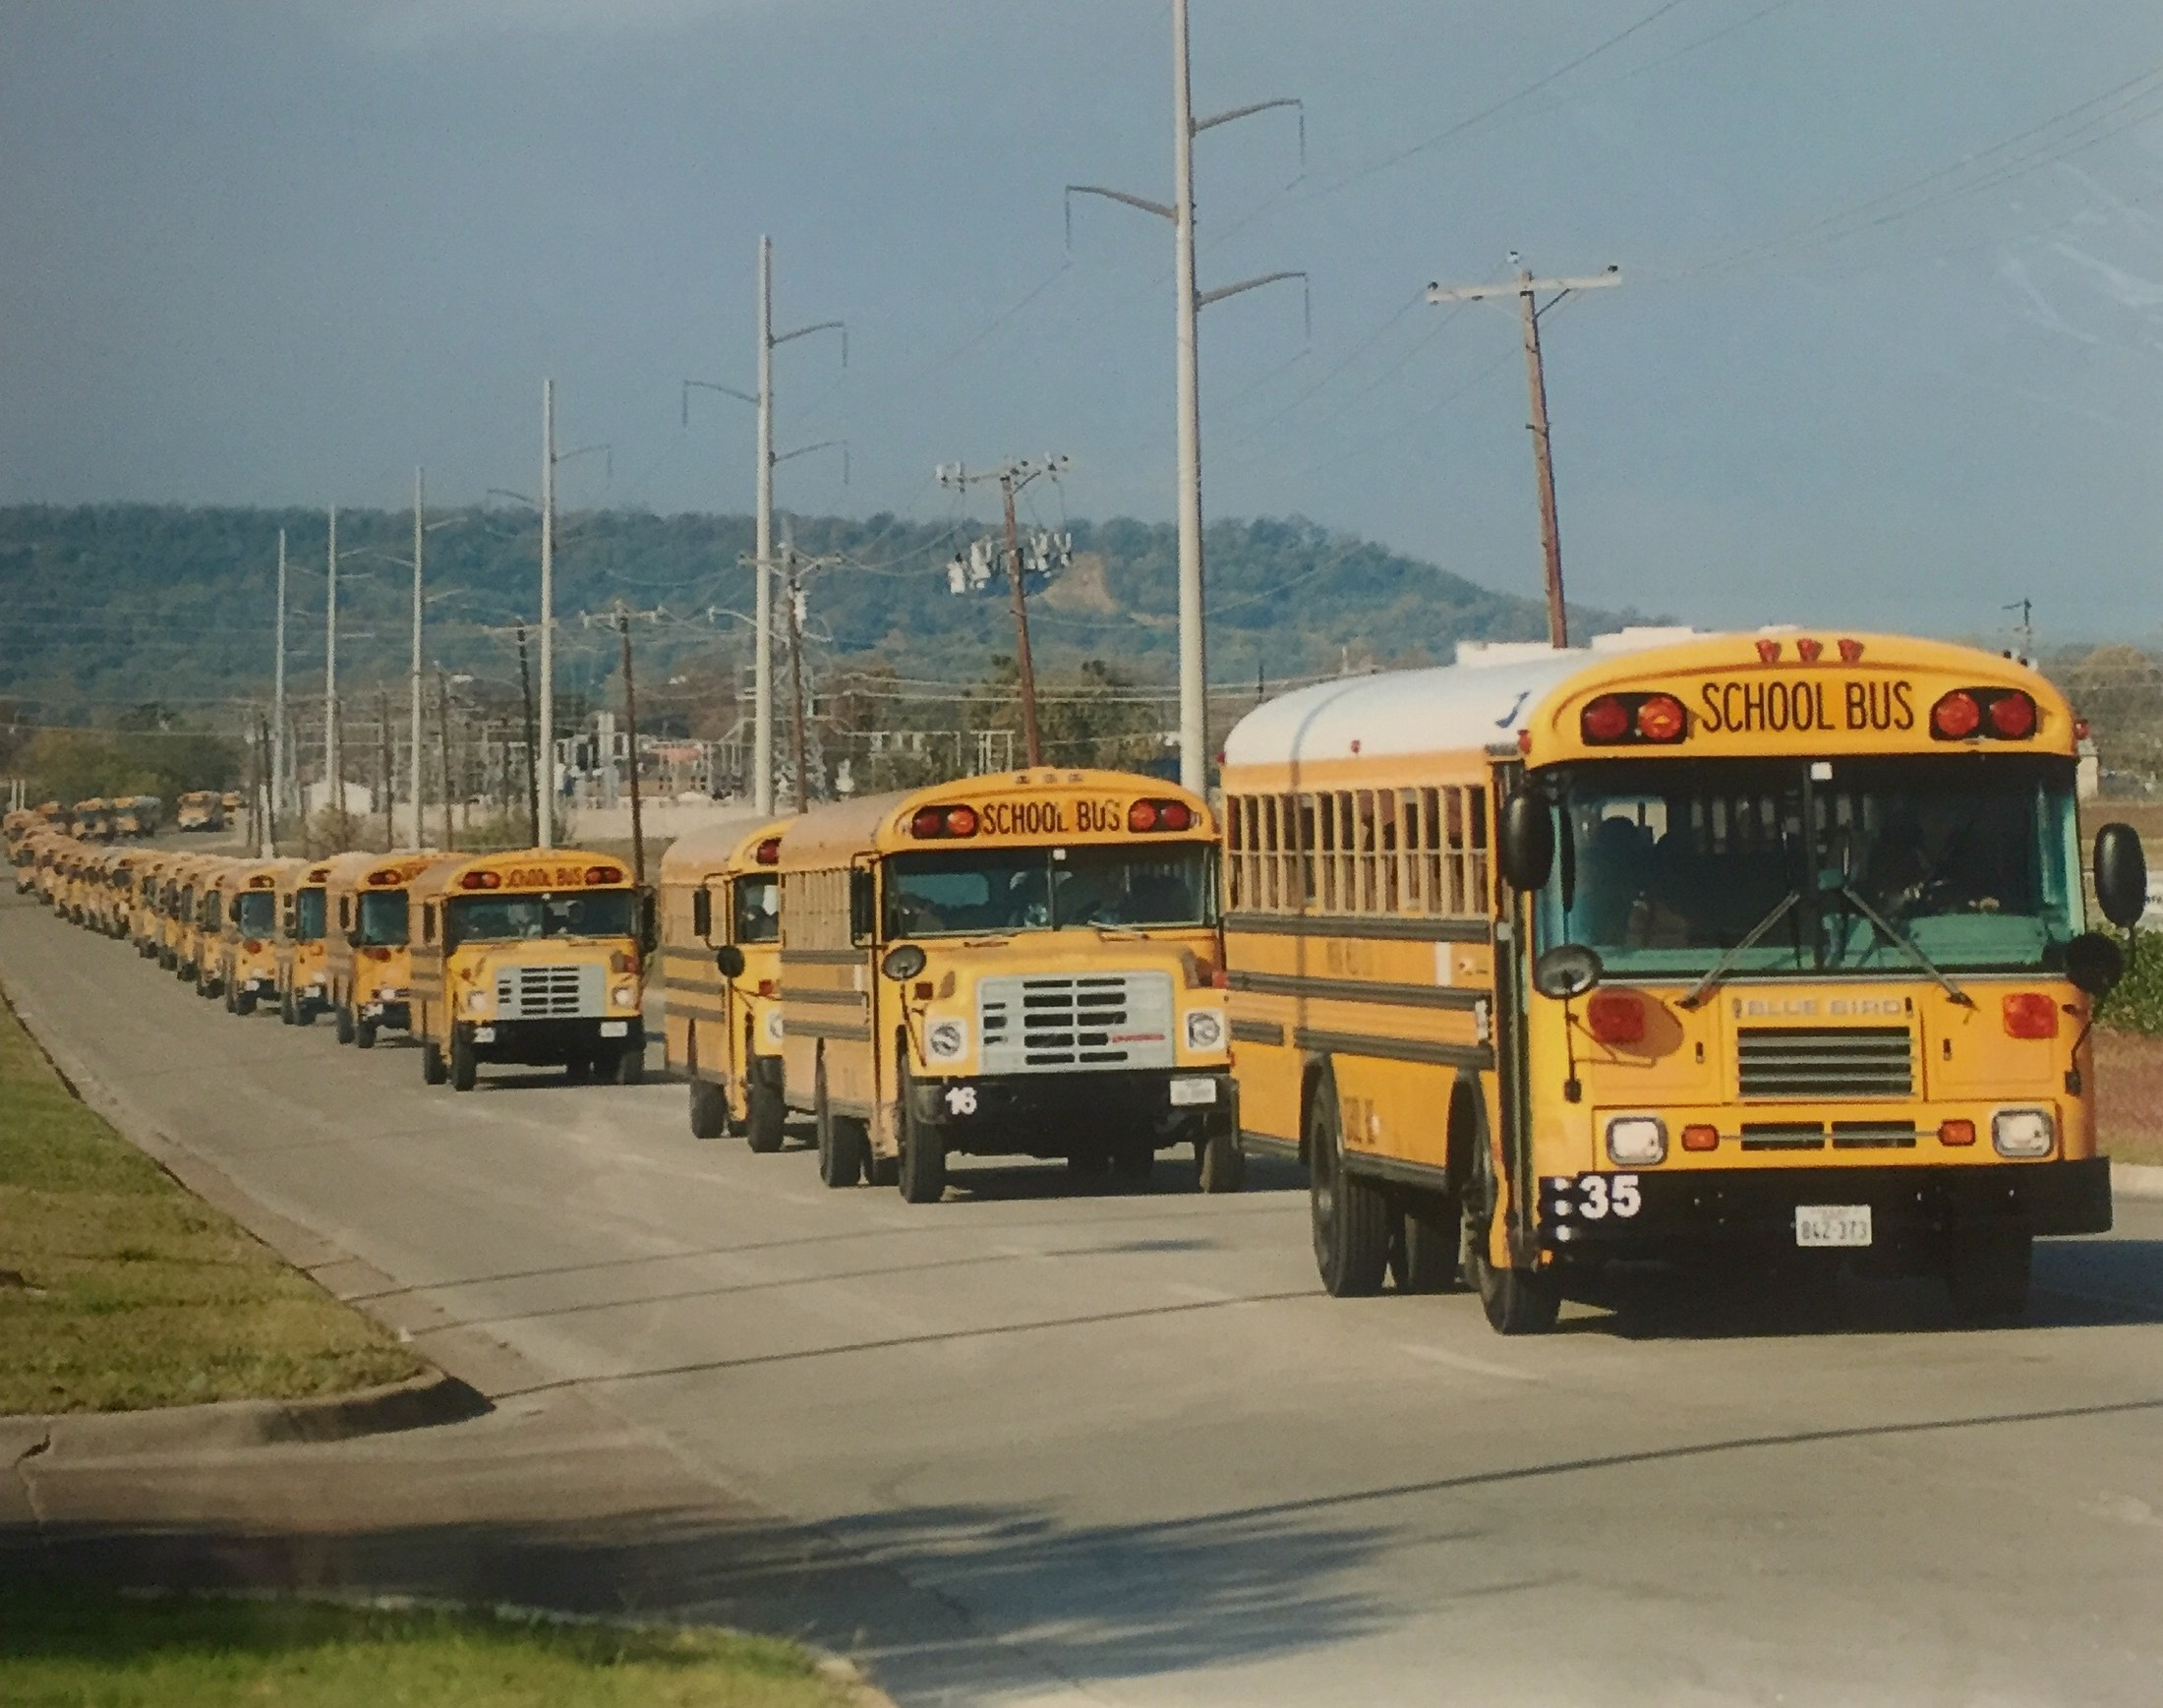 MWISD School Buses on route